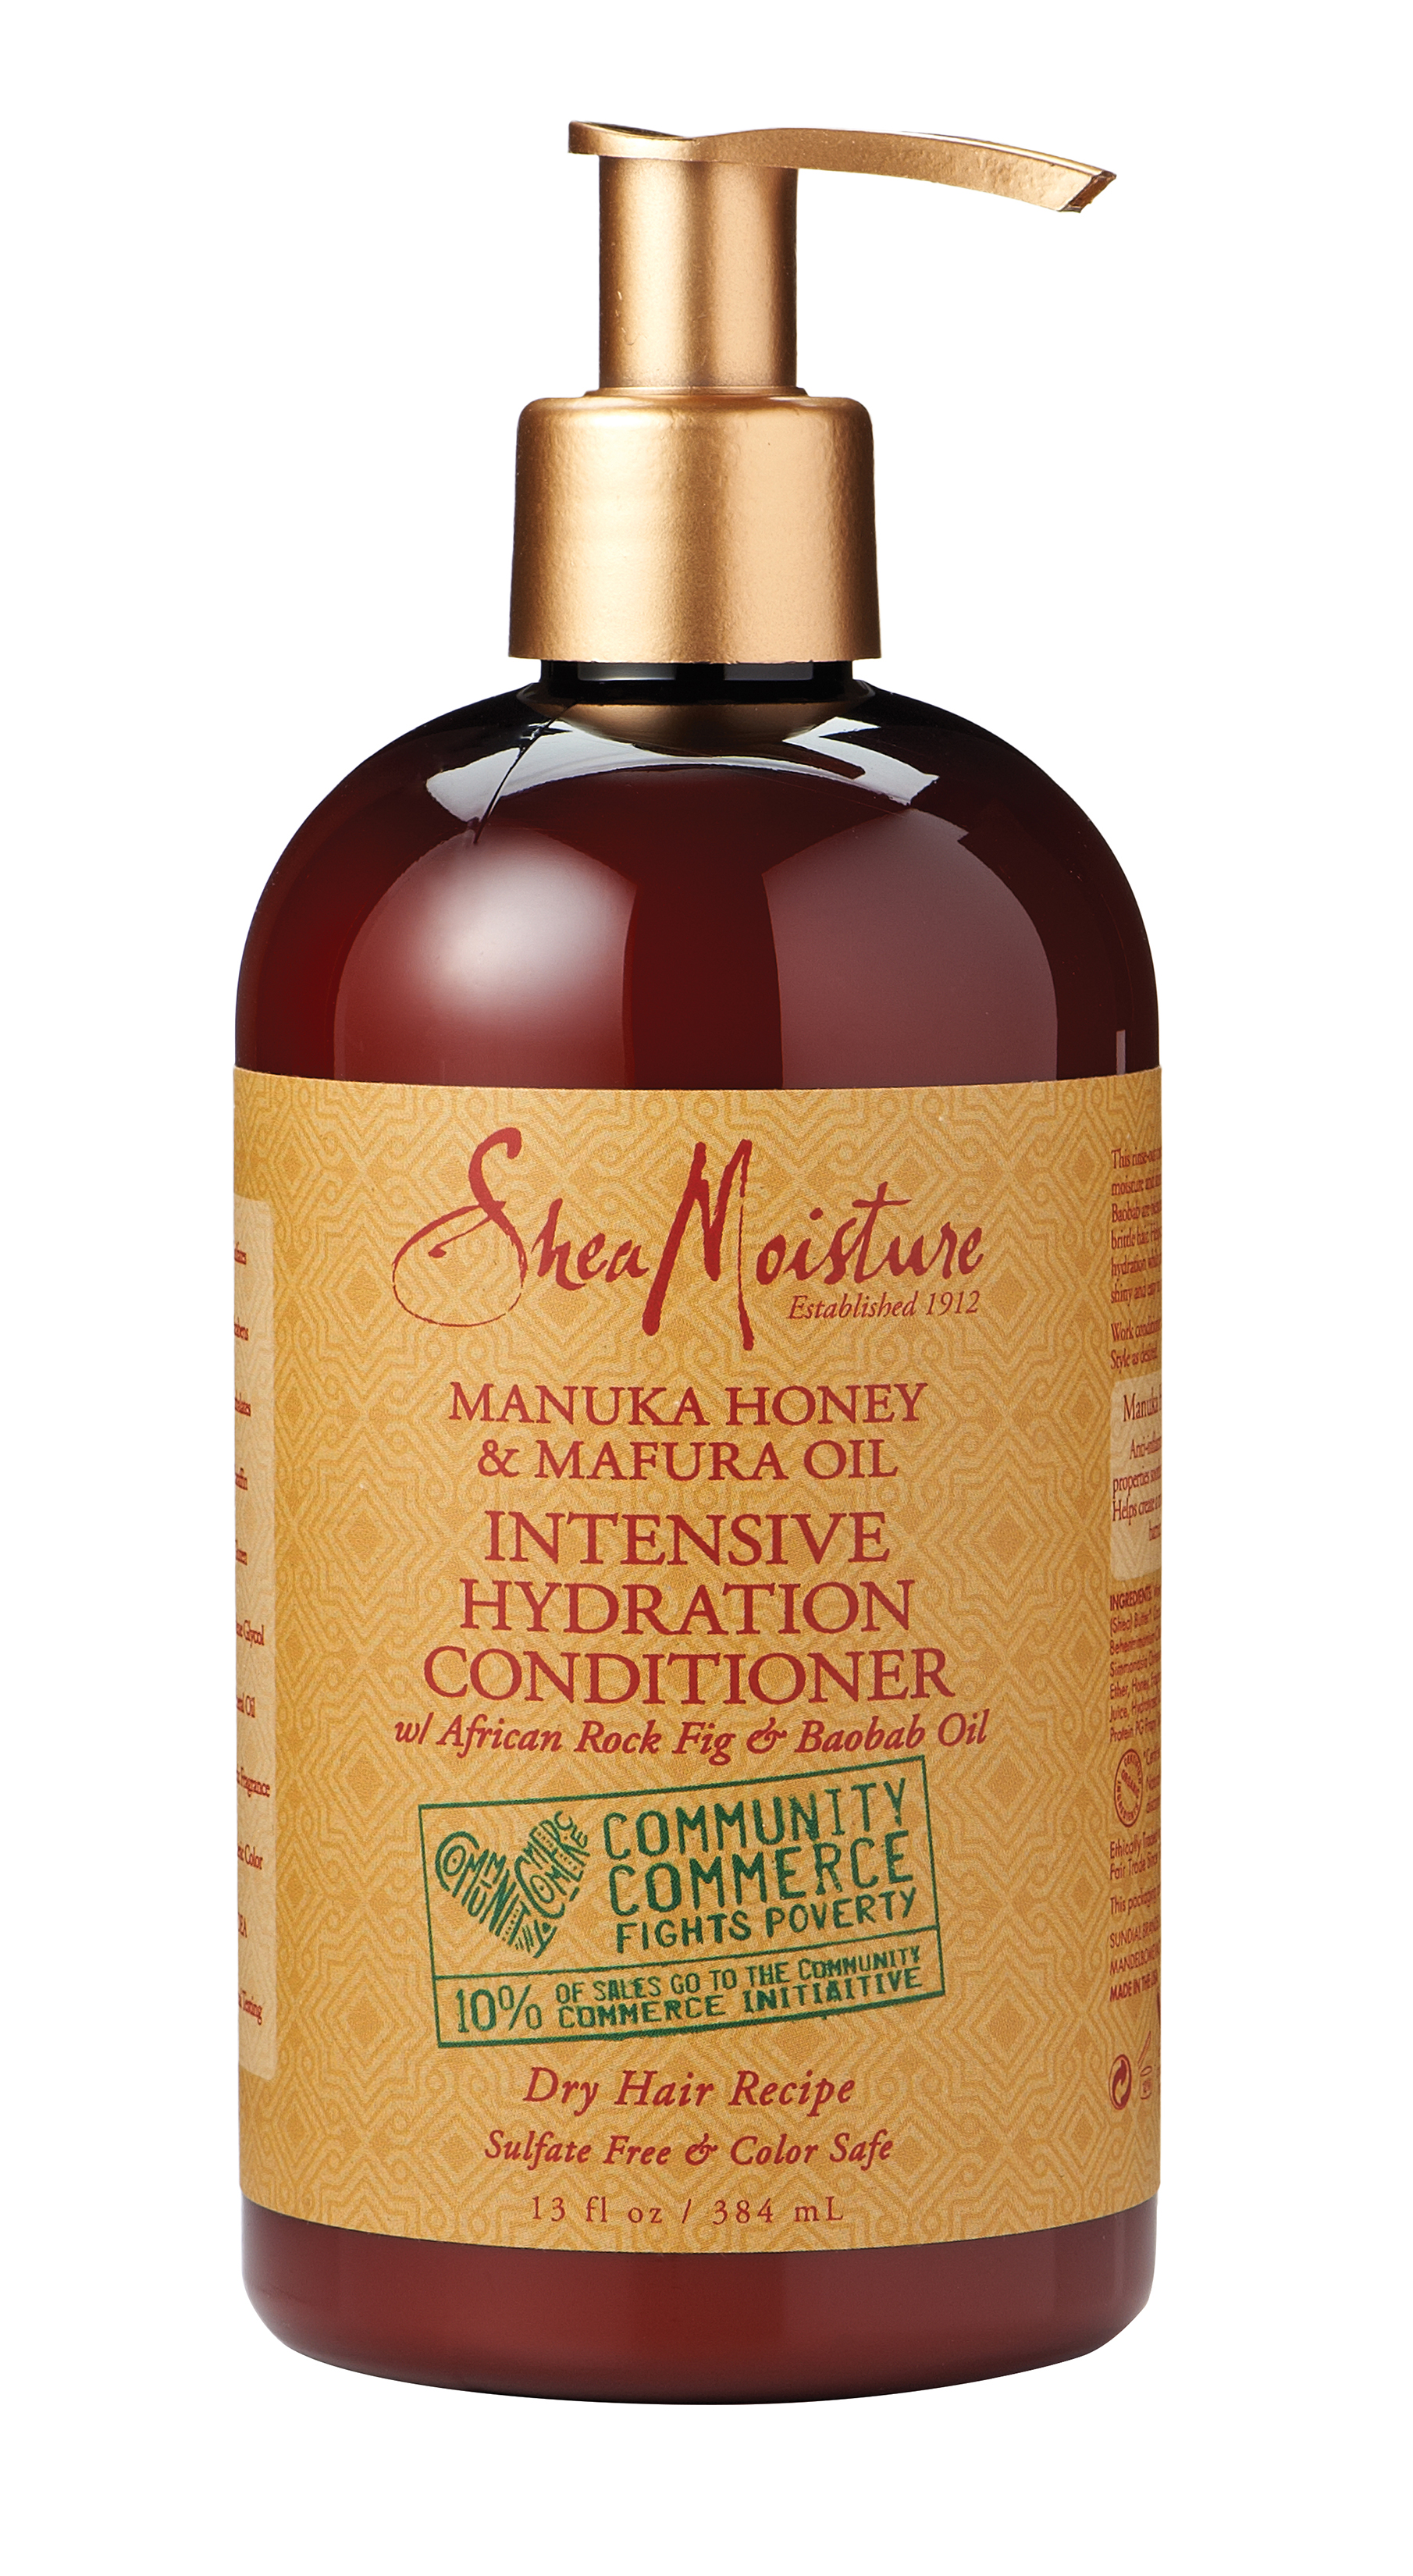 Daily Conditioner: SheaMoisture Manuka Honey & Mafura Oil Hydration Intensive Conditioner